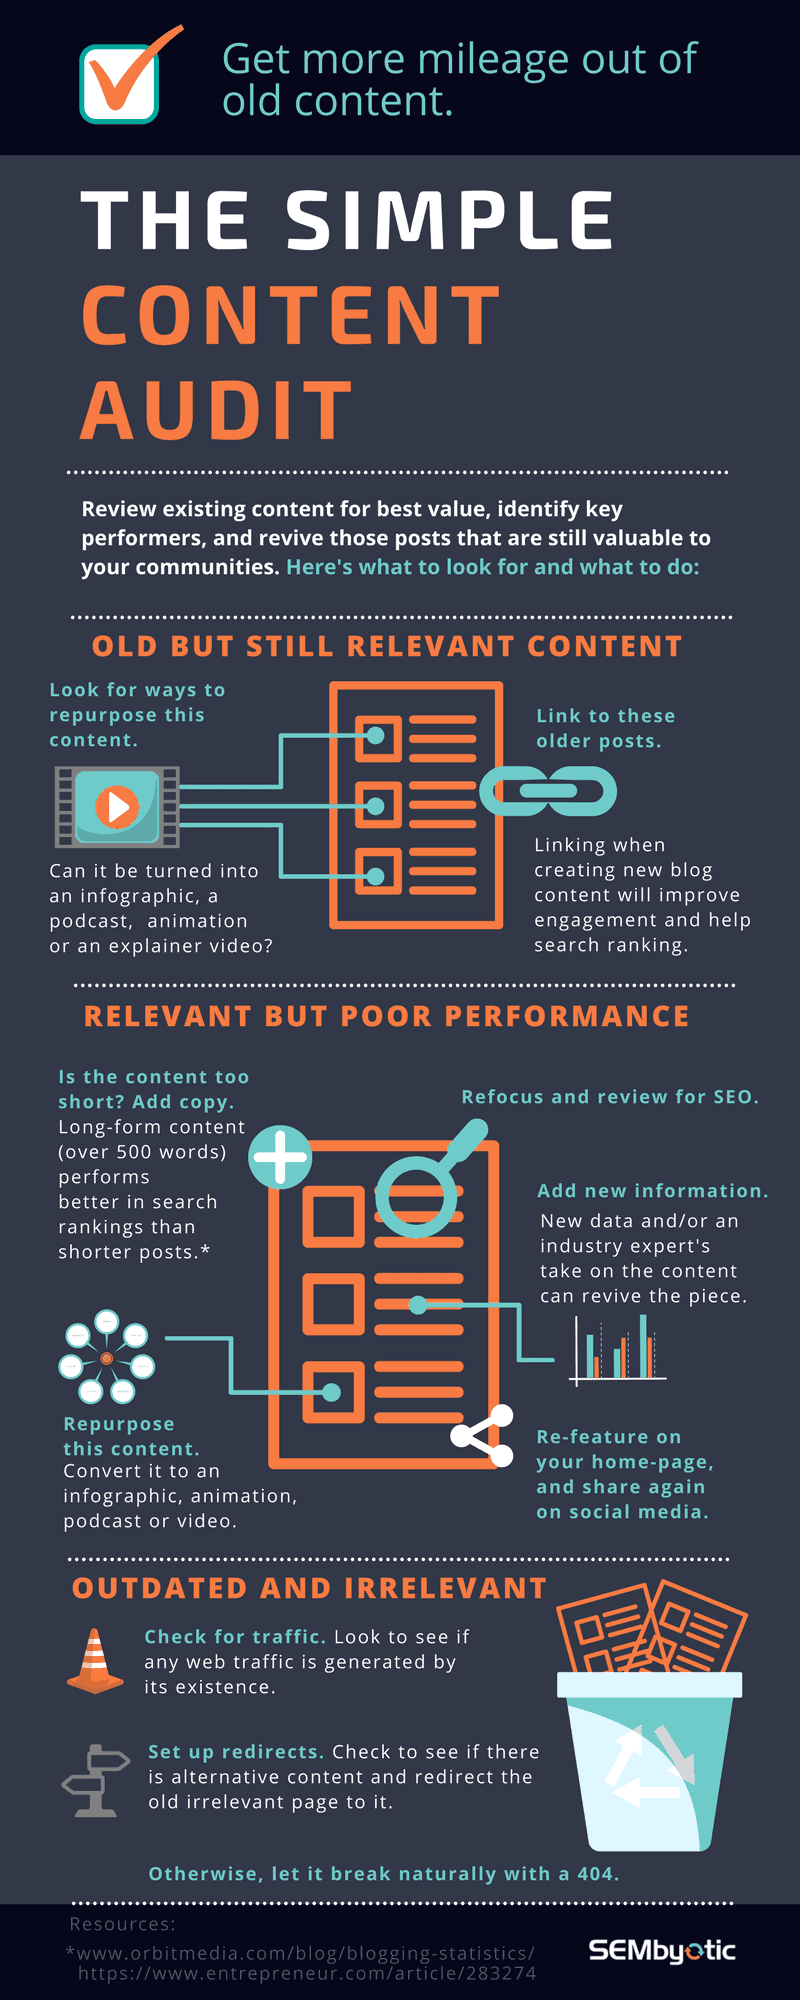 Learn more about content auditing, in this great infographic.